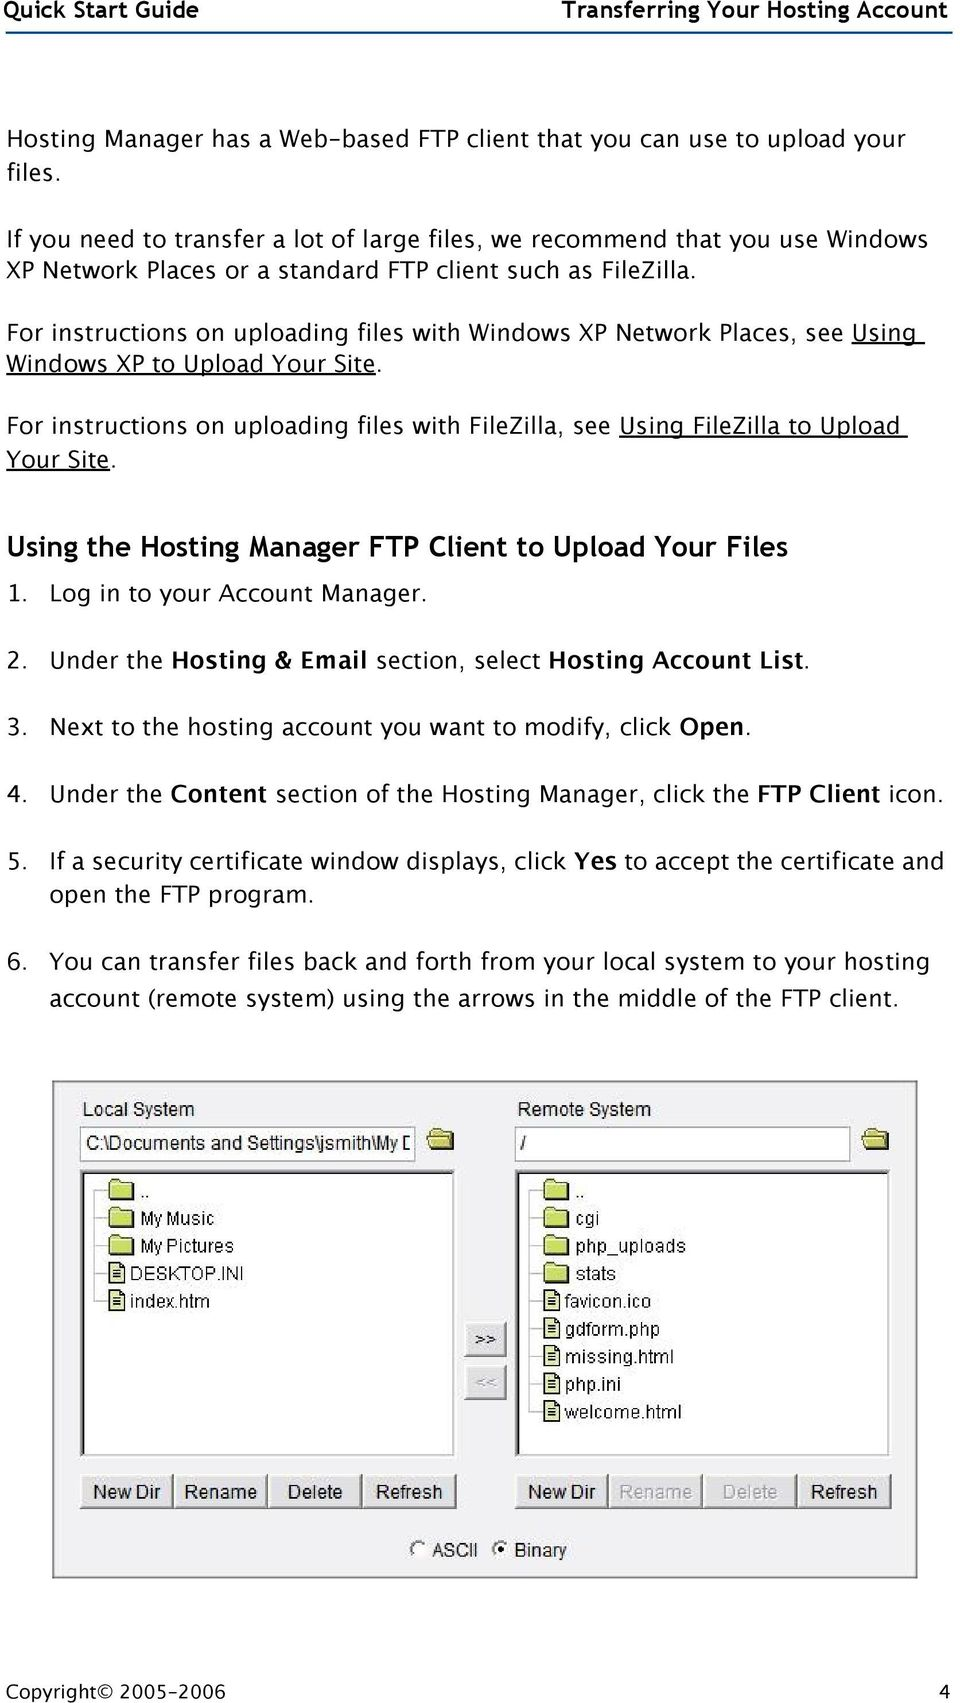 For instructions on uploading files with Windows XP Network Places, see Using Windows XP to Upload Your Site.